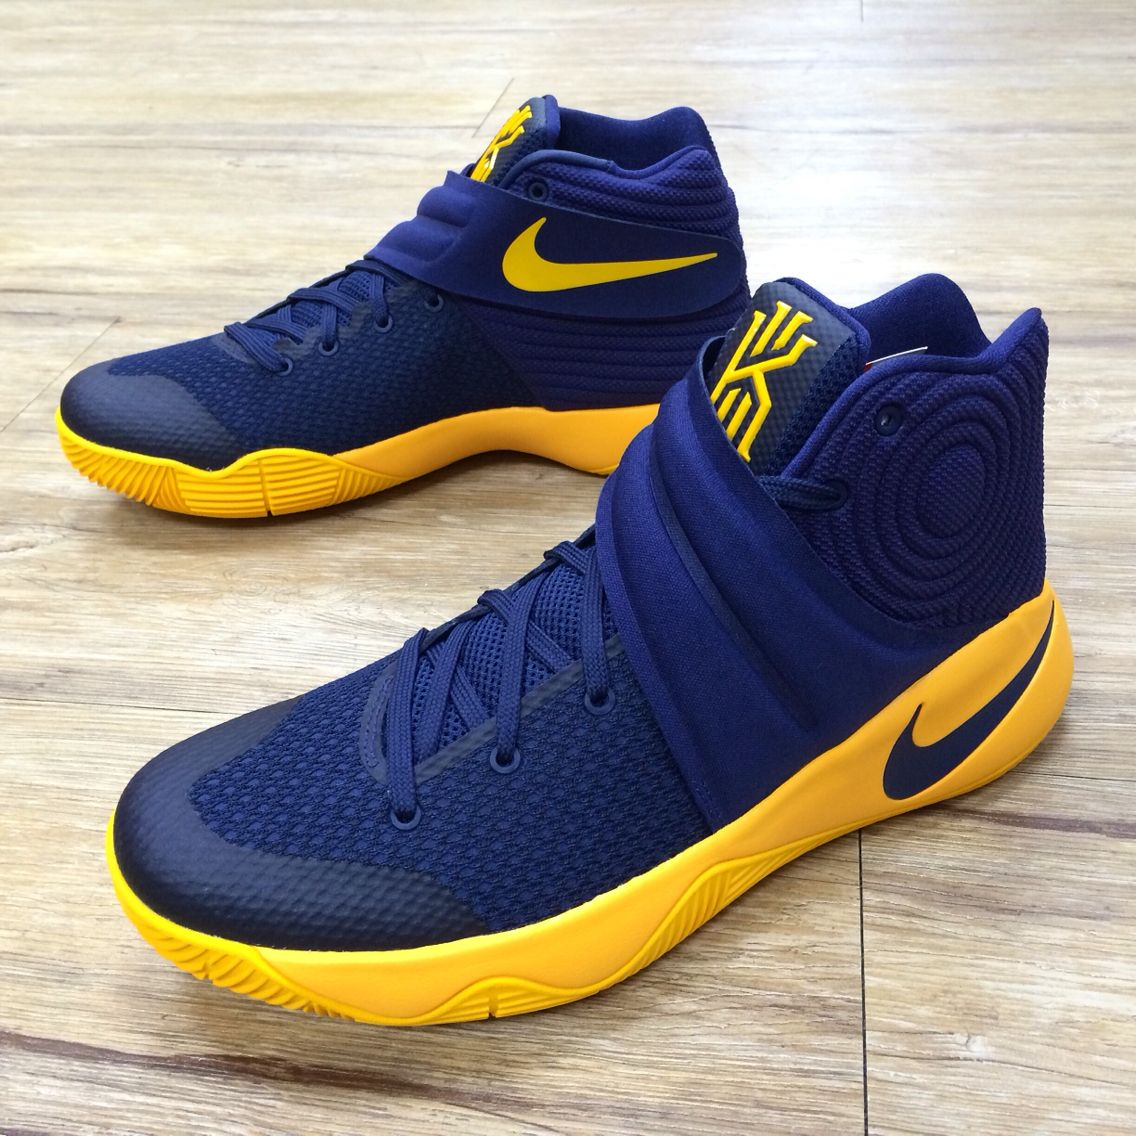 cab83786da8 Nike Kyrie 2 EP II Irving Cavs Playoffs PE Navy Gold Mens Basketball  820537-447